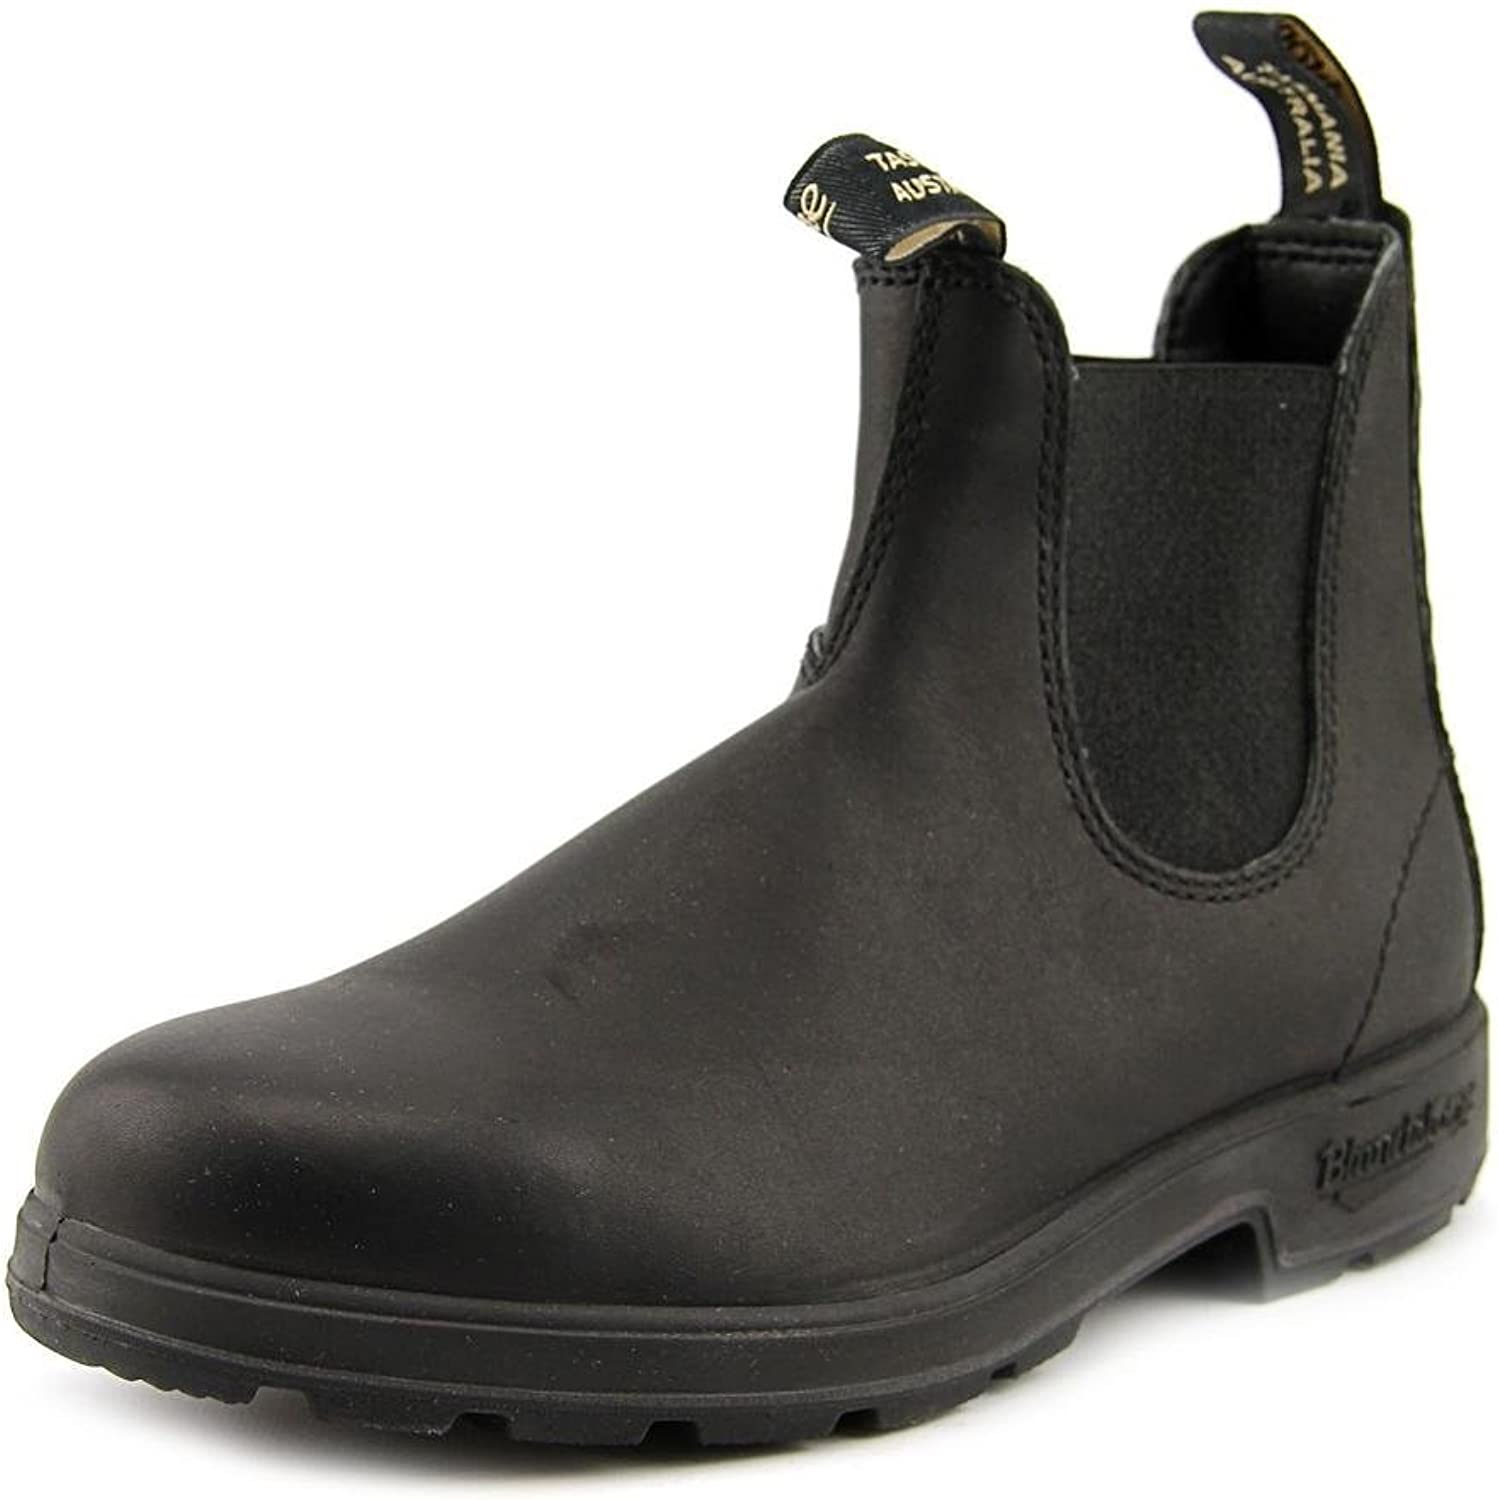 bluendstone 510 THE ORIGINAL Black Pull-on Boots (5.0 UK   US 6.0 Men, 8.0 Women)